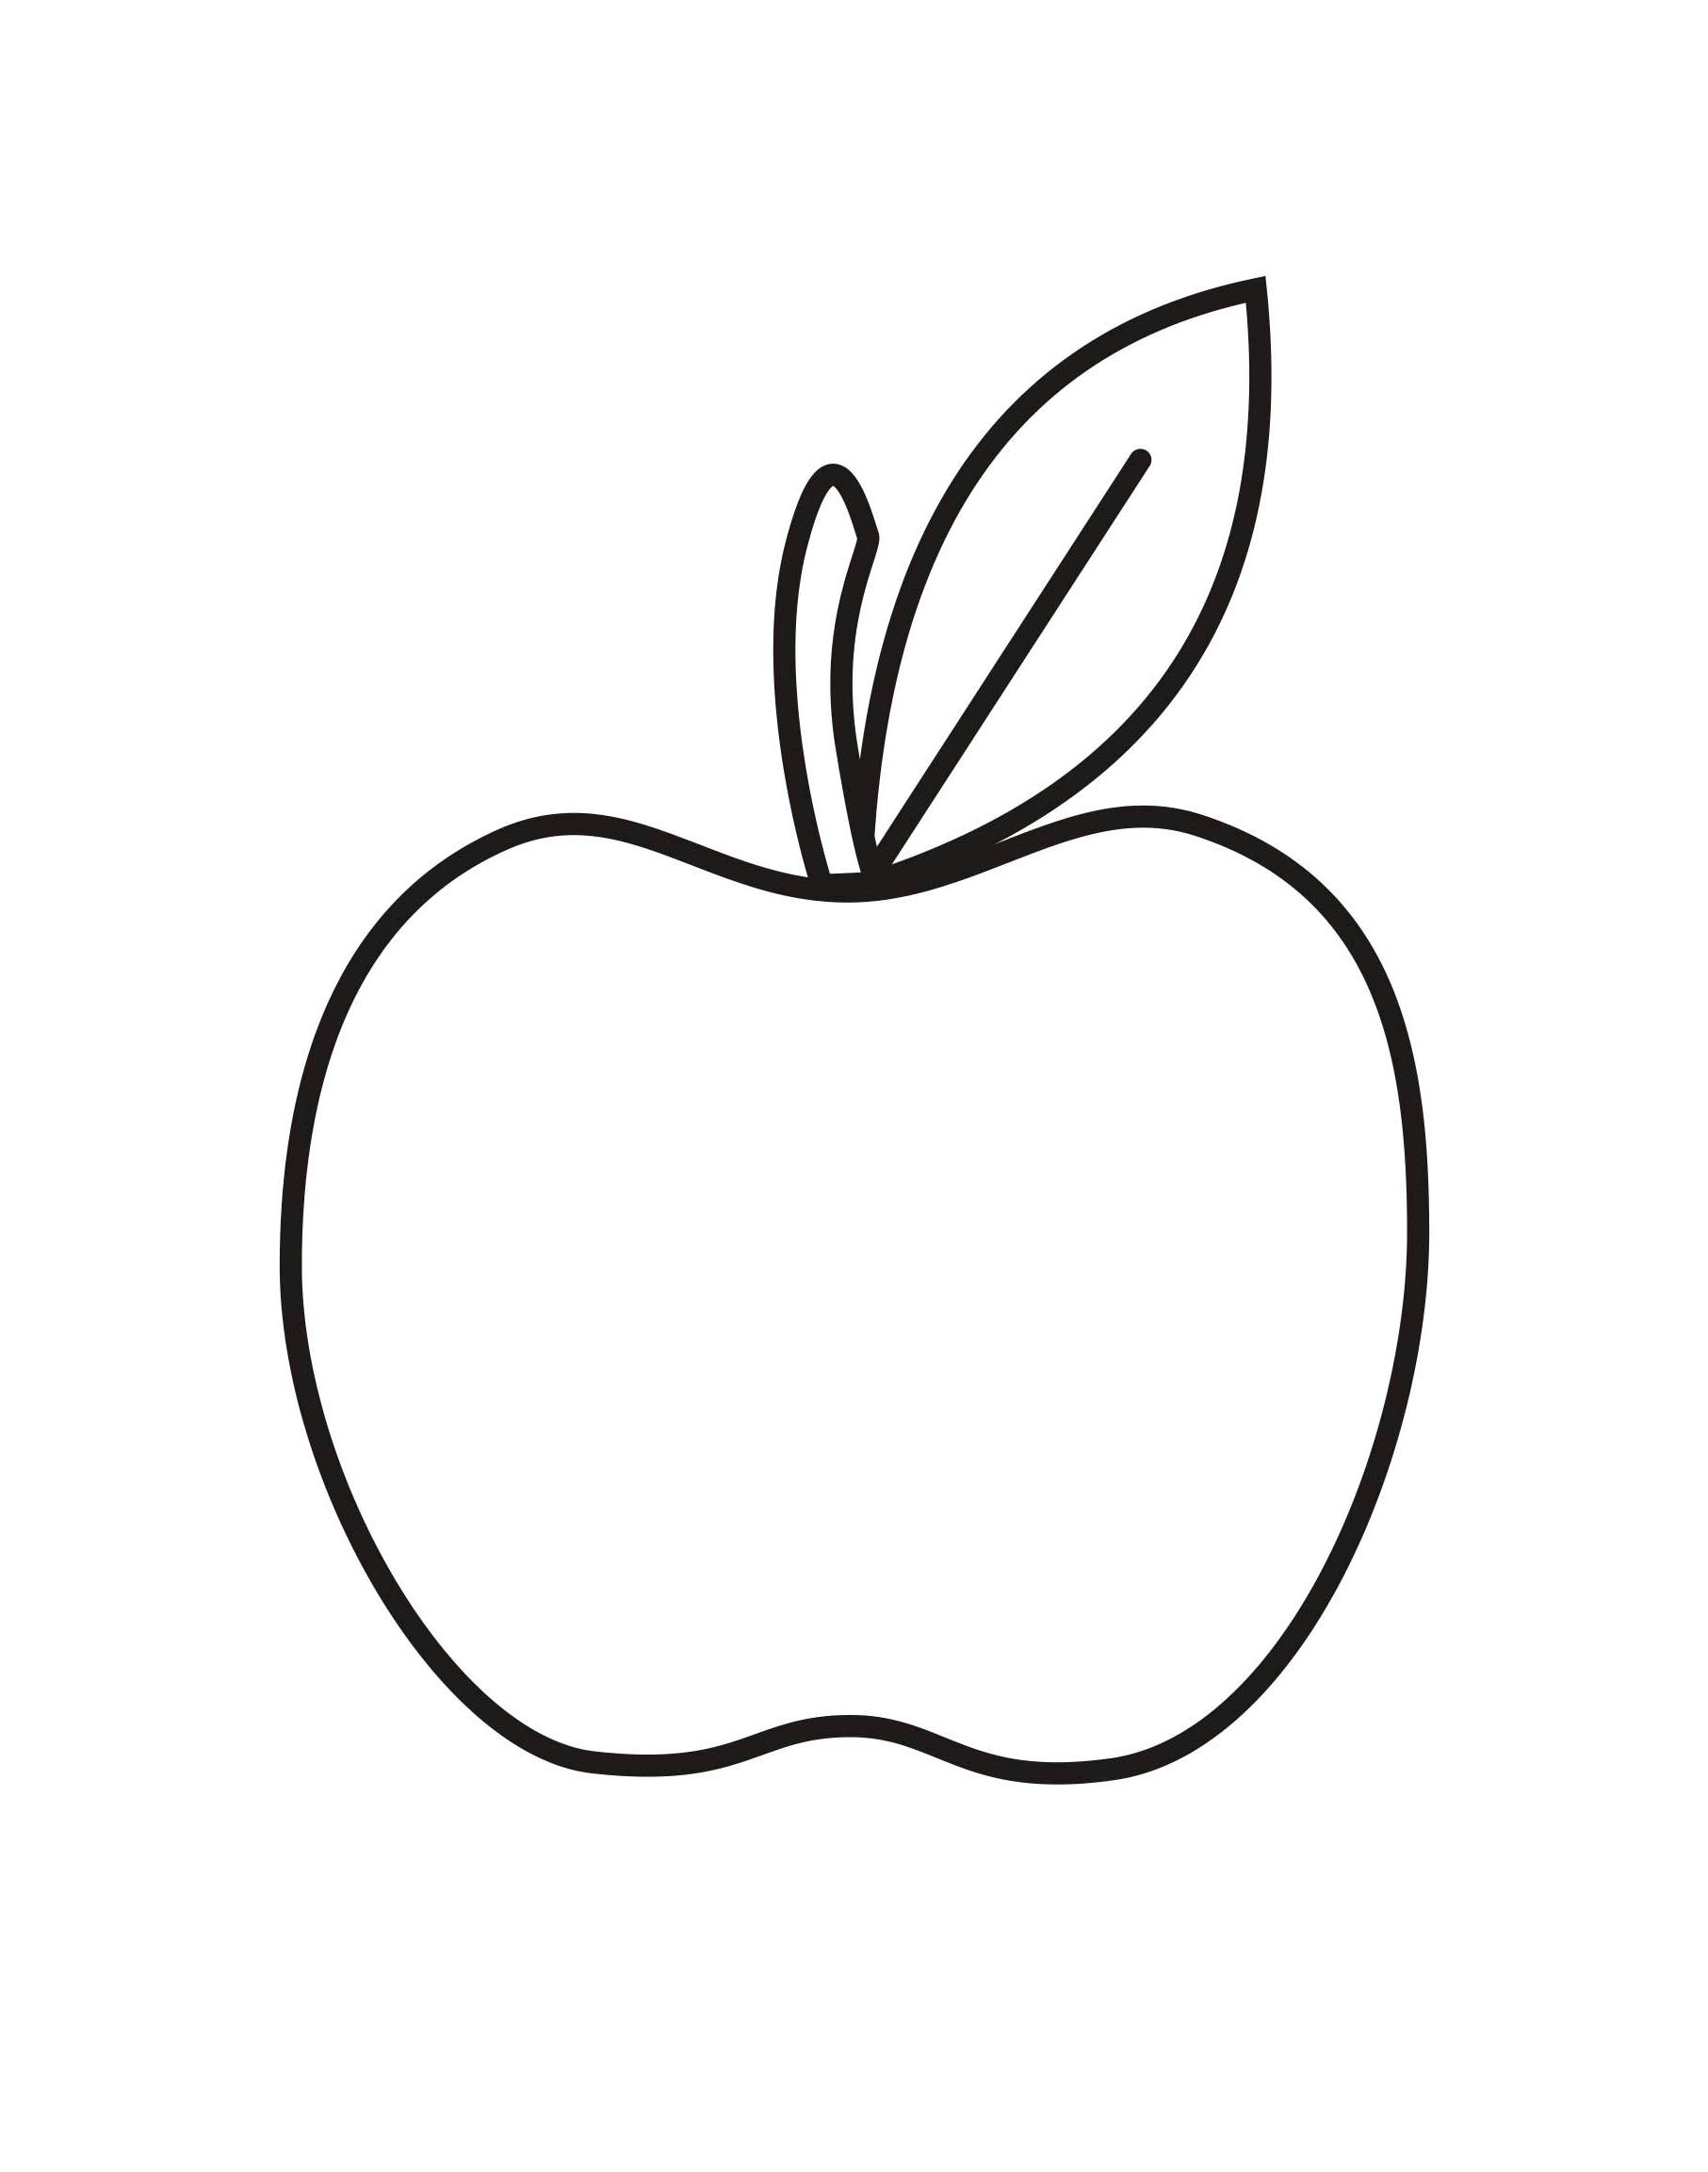 Free Coloring Pages Of An Apple : Apple coloring pages for preschoolers coloringpages